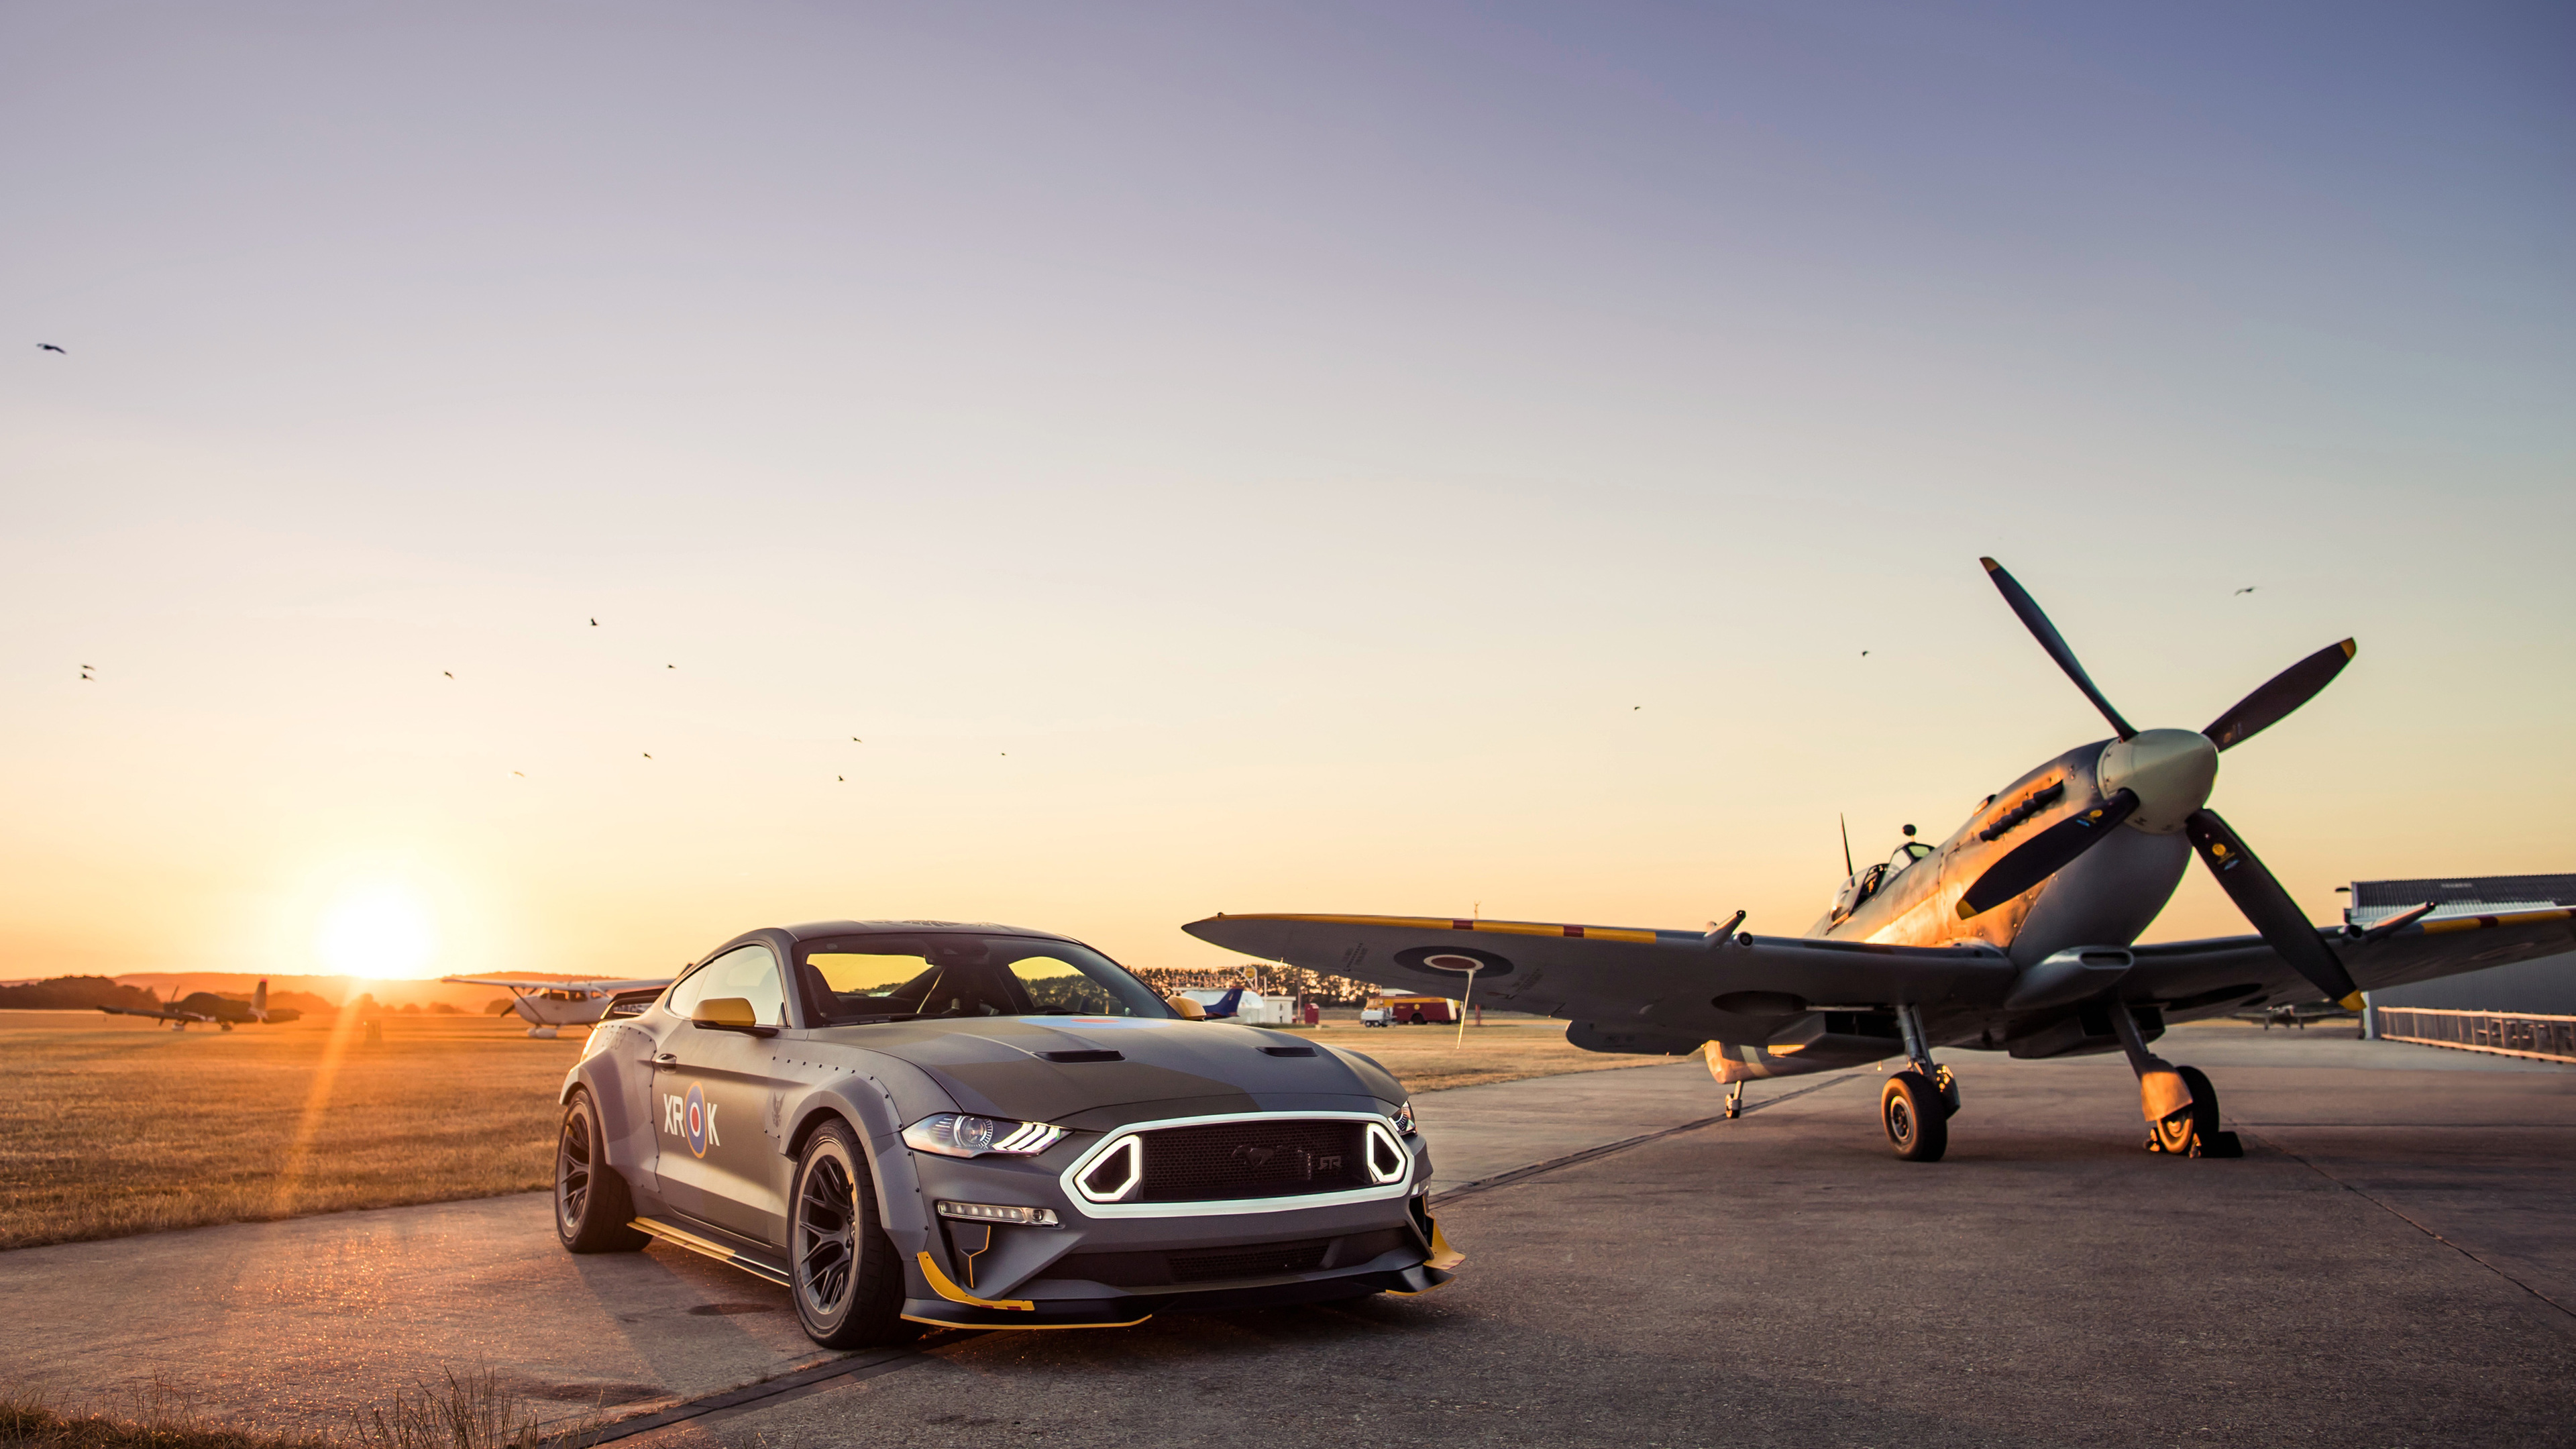 ford eagle squadron mustang gt 1539112445 - Ford Eagle Squadron Mustang GT - mustang wallpapers, hd-wallpapers, ford mustang wallpapers, cars wallpapers, 4k-wallpapers, 2018 cars wallpapers